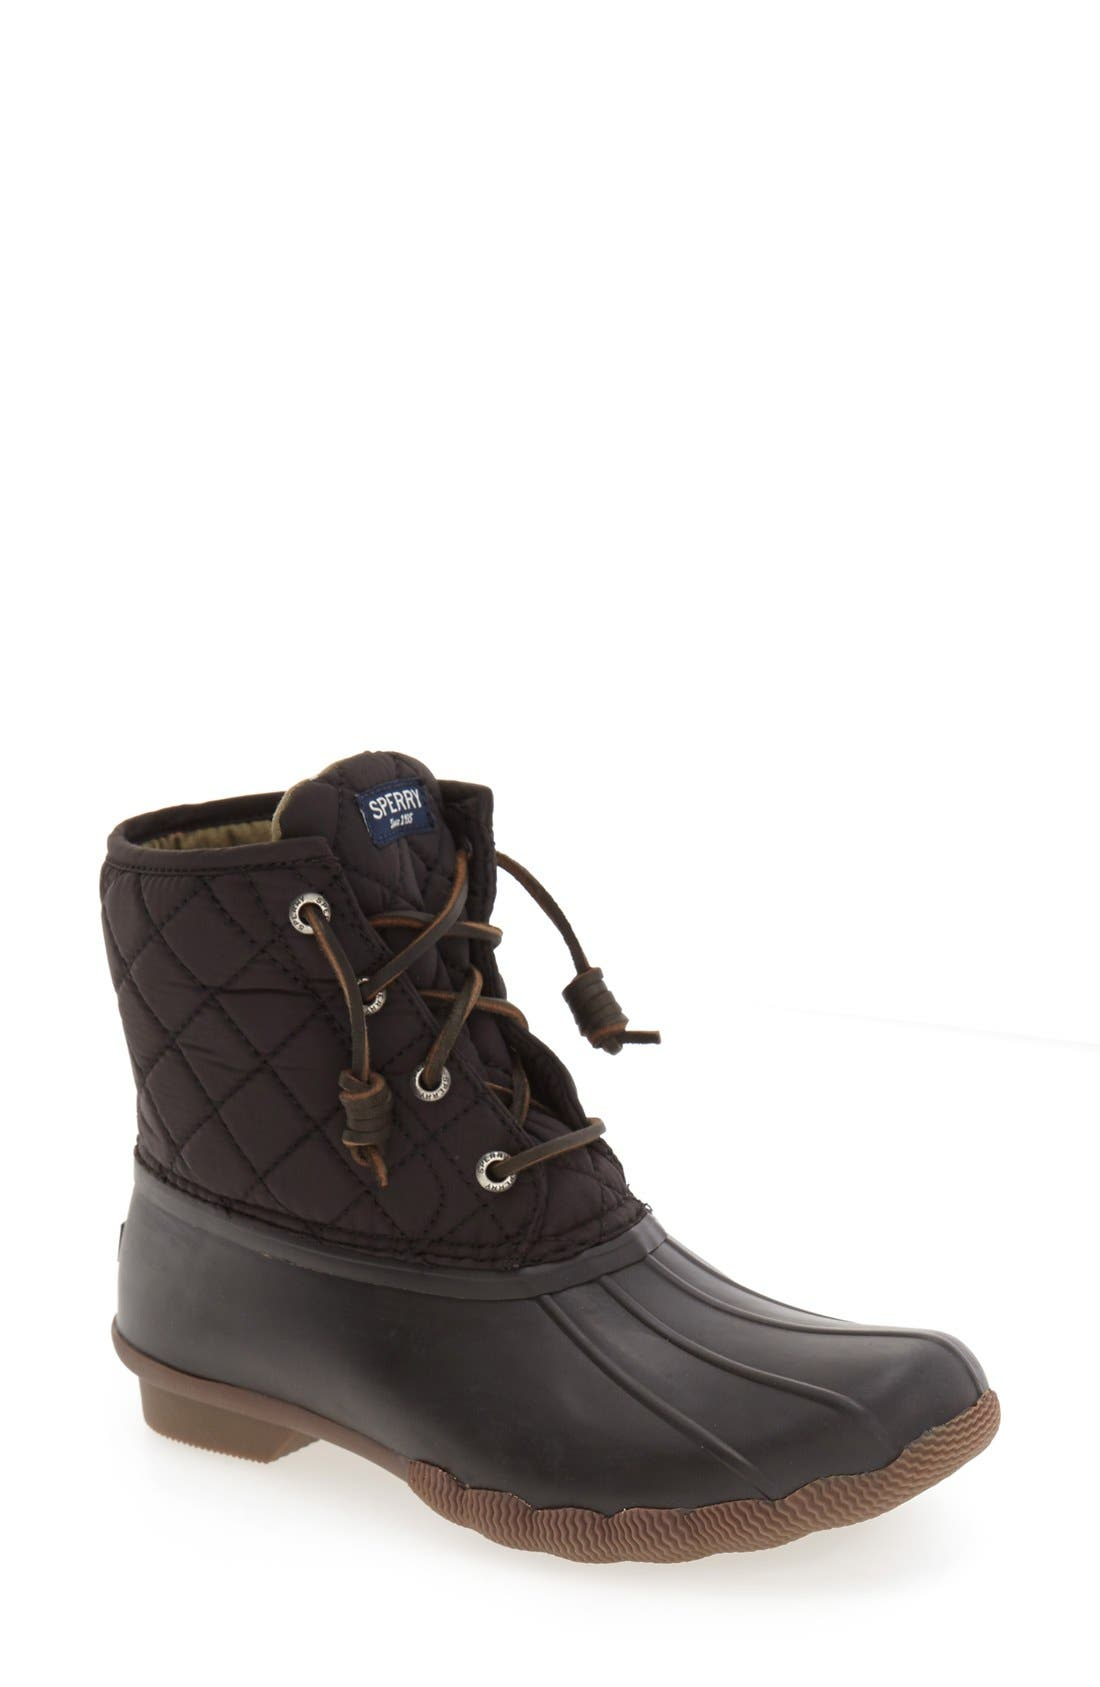 Sperry 'Saltwater' Waterproof Rain Boot (Women)